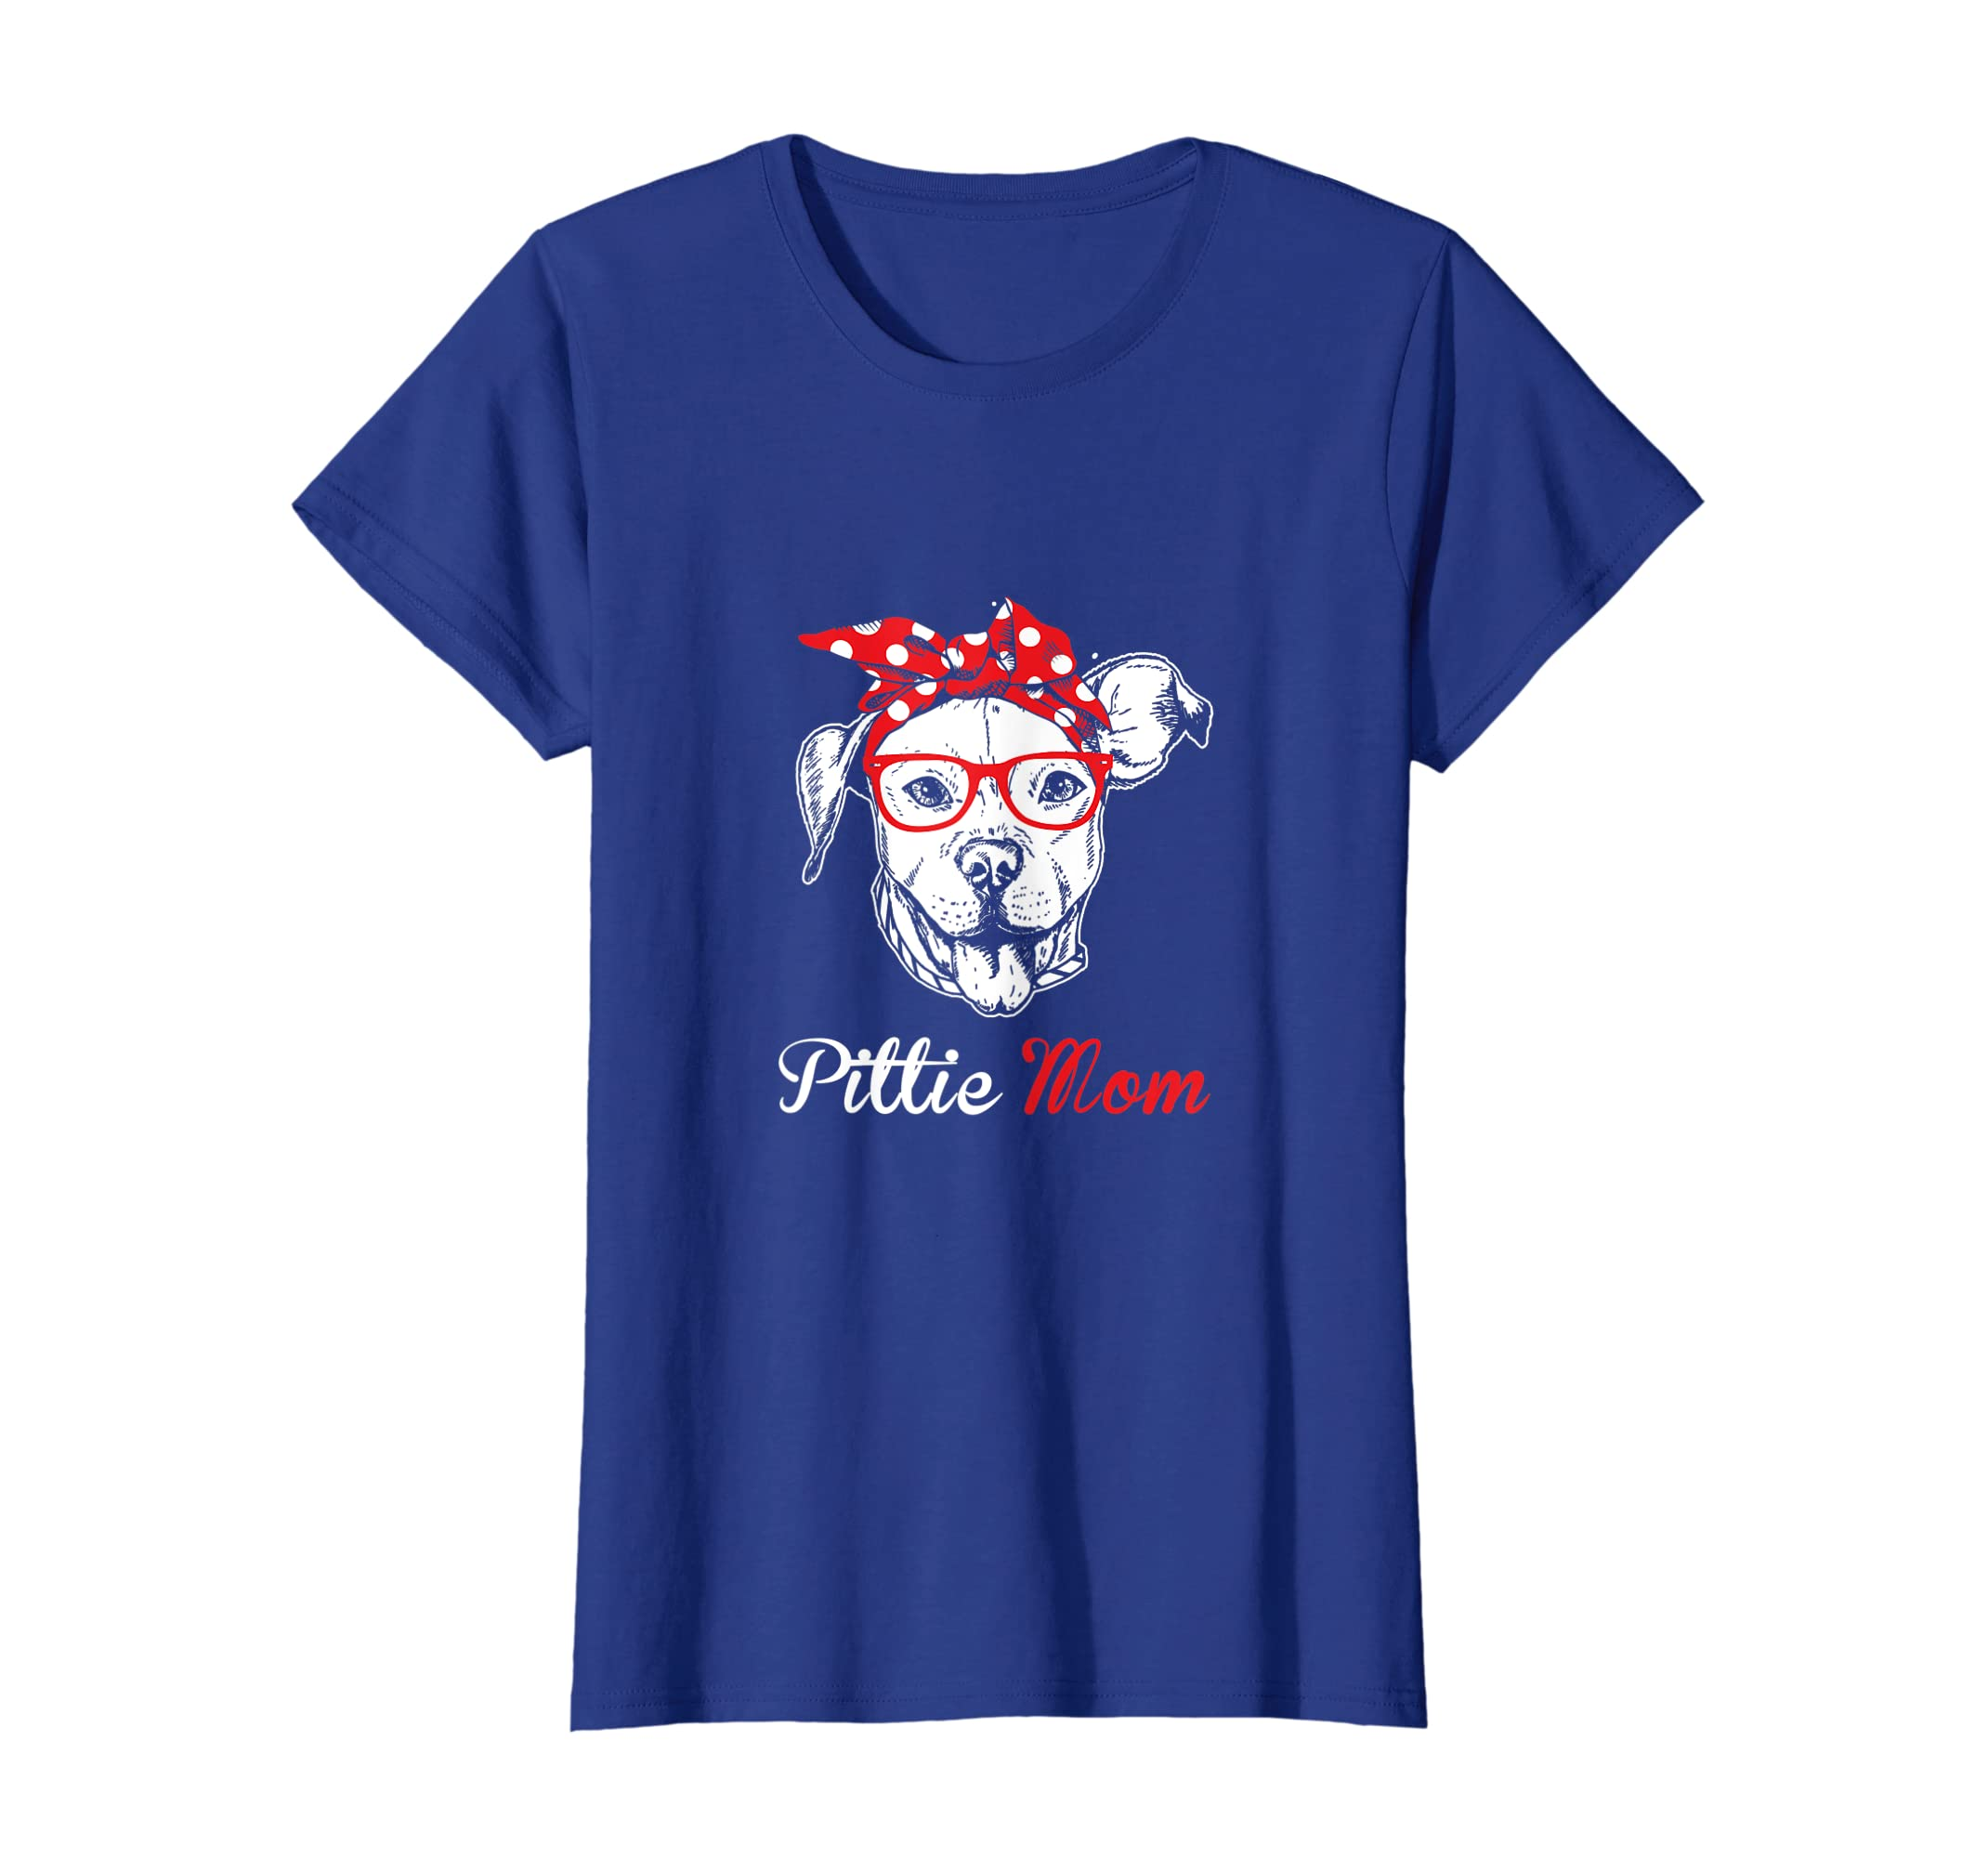 Pittie Mom Pit Bull Dog Lover Owner Women Mothers Day Shirt-Yolotee